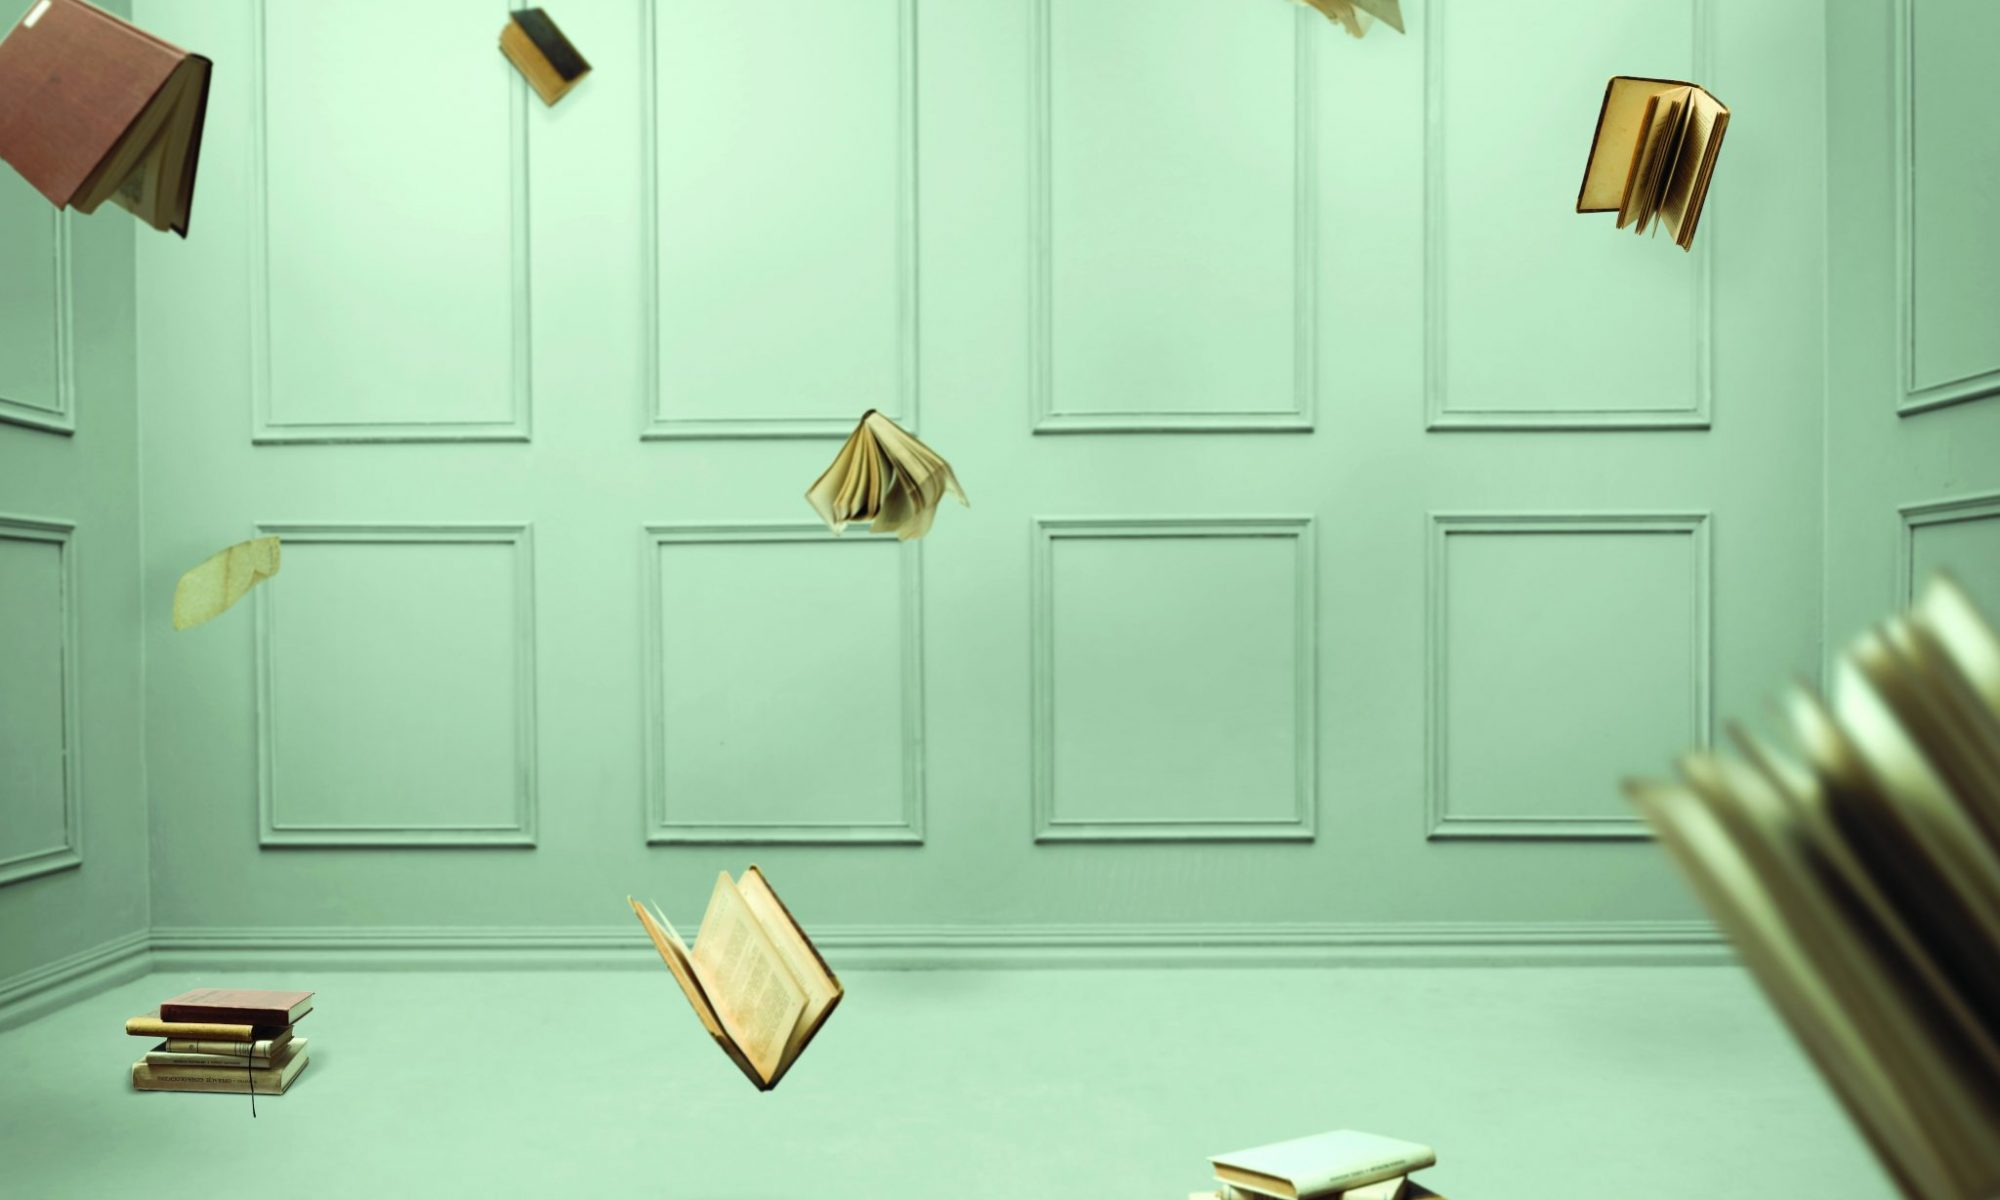 Here are multiple falling books in a closed pale green room. Business Impact article on the place of culture in offering holistic experiences.